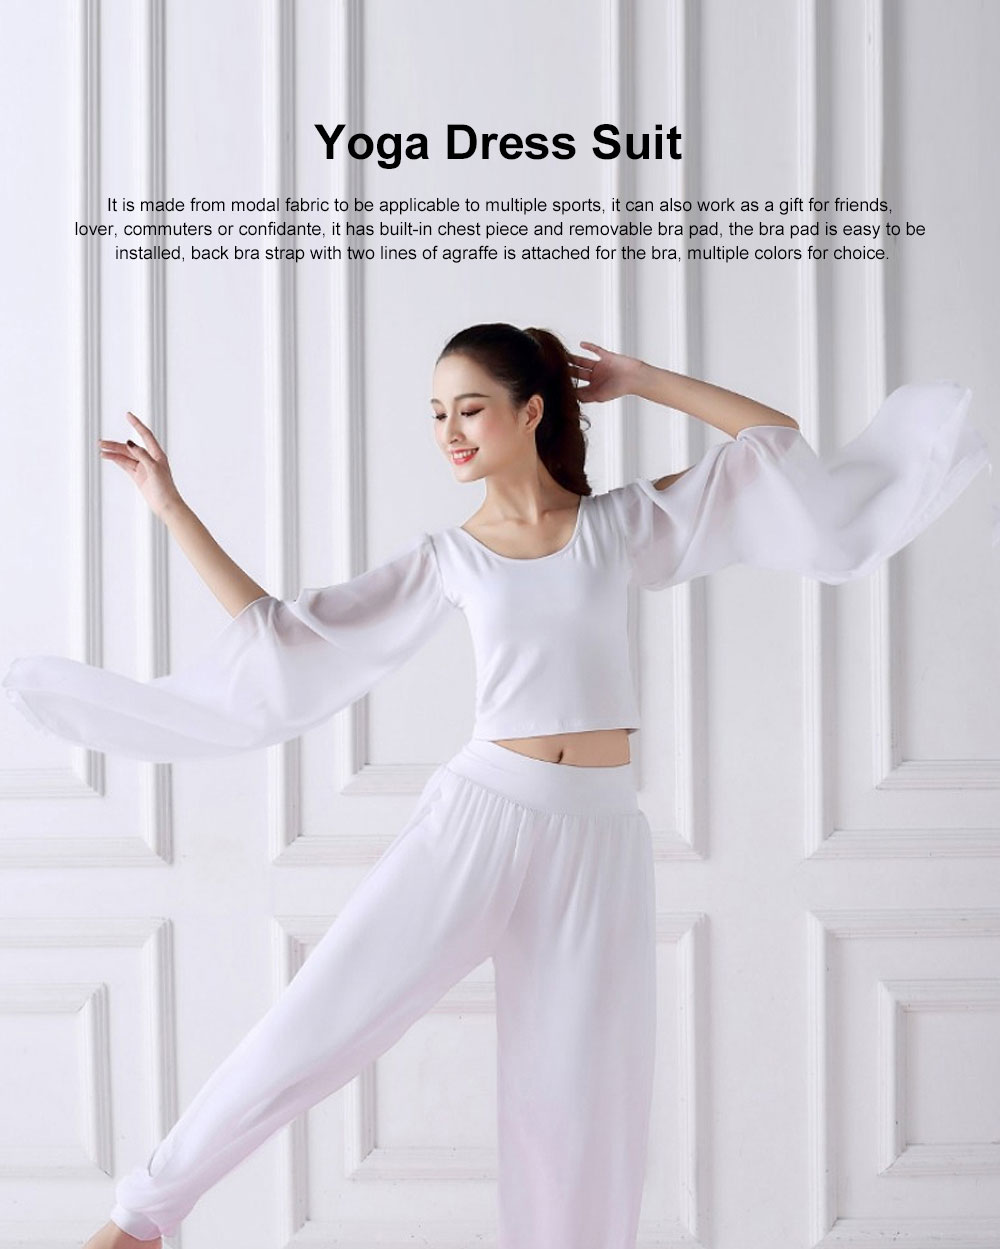 Beauty Shaped Yoga Wear for Women, Cotton Chiffon Yarn Belly Dance Formal Clothes Suit, Slim-fitting Performance Clothes Suit for Yoga, Fitness, Exercise 0